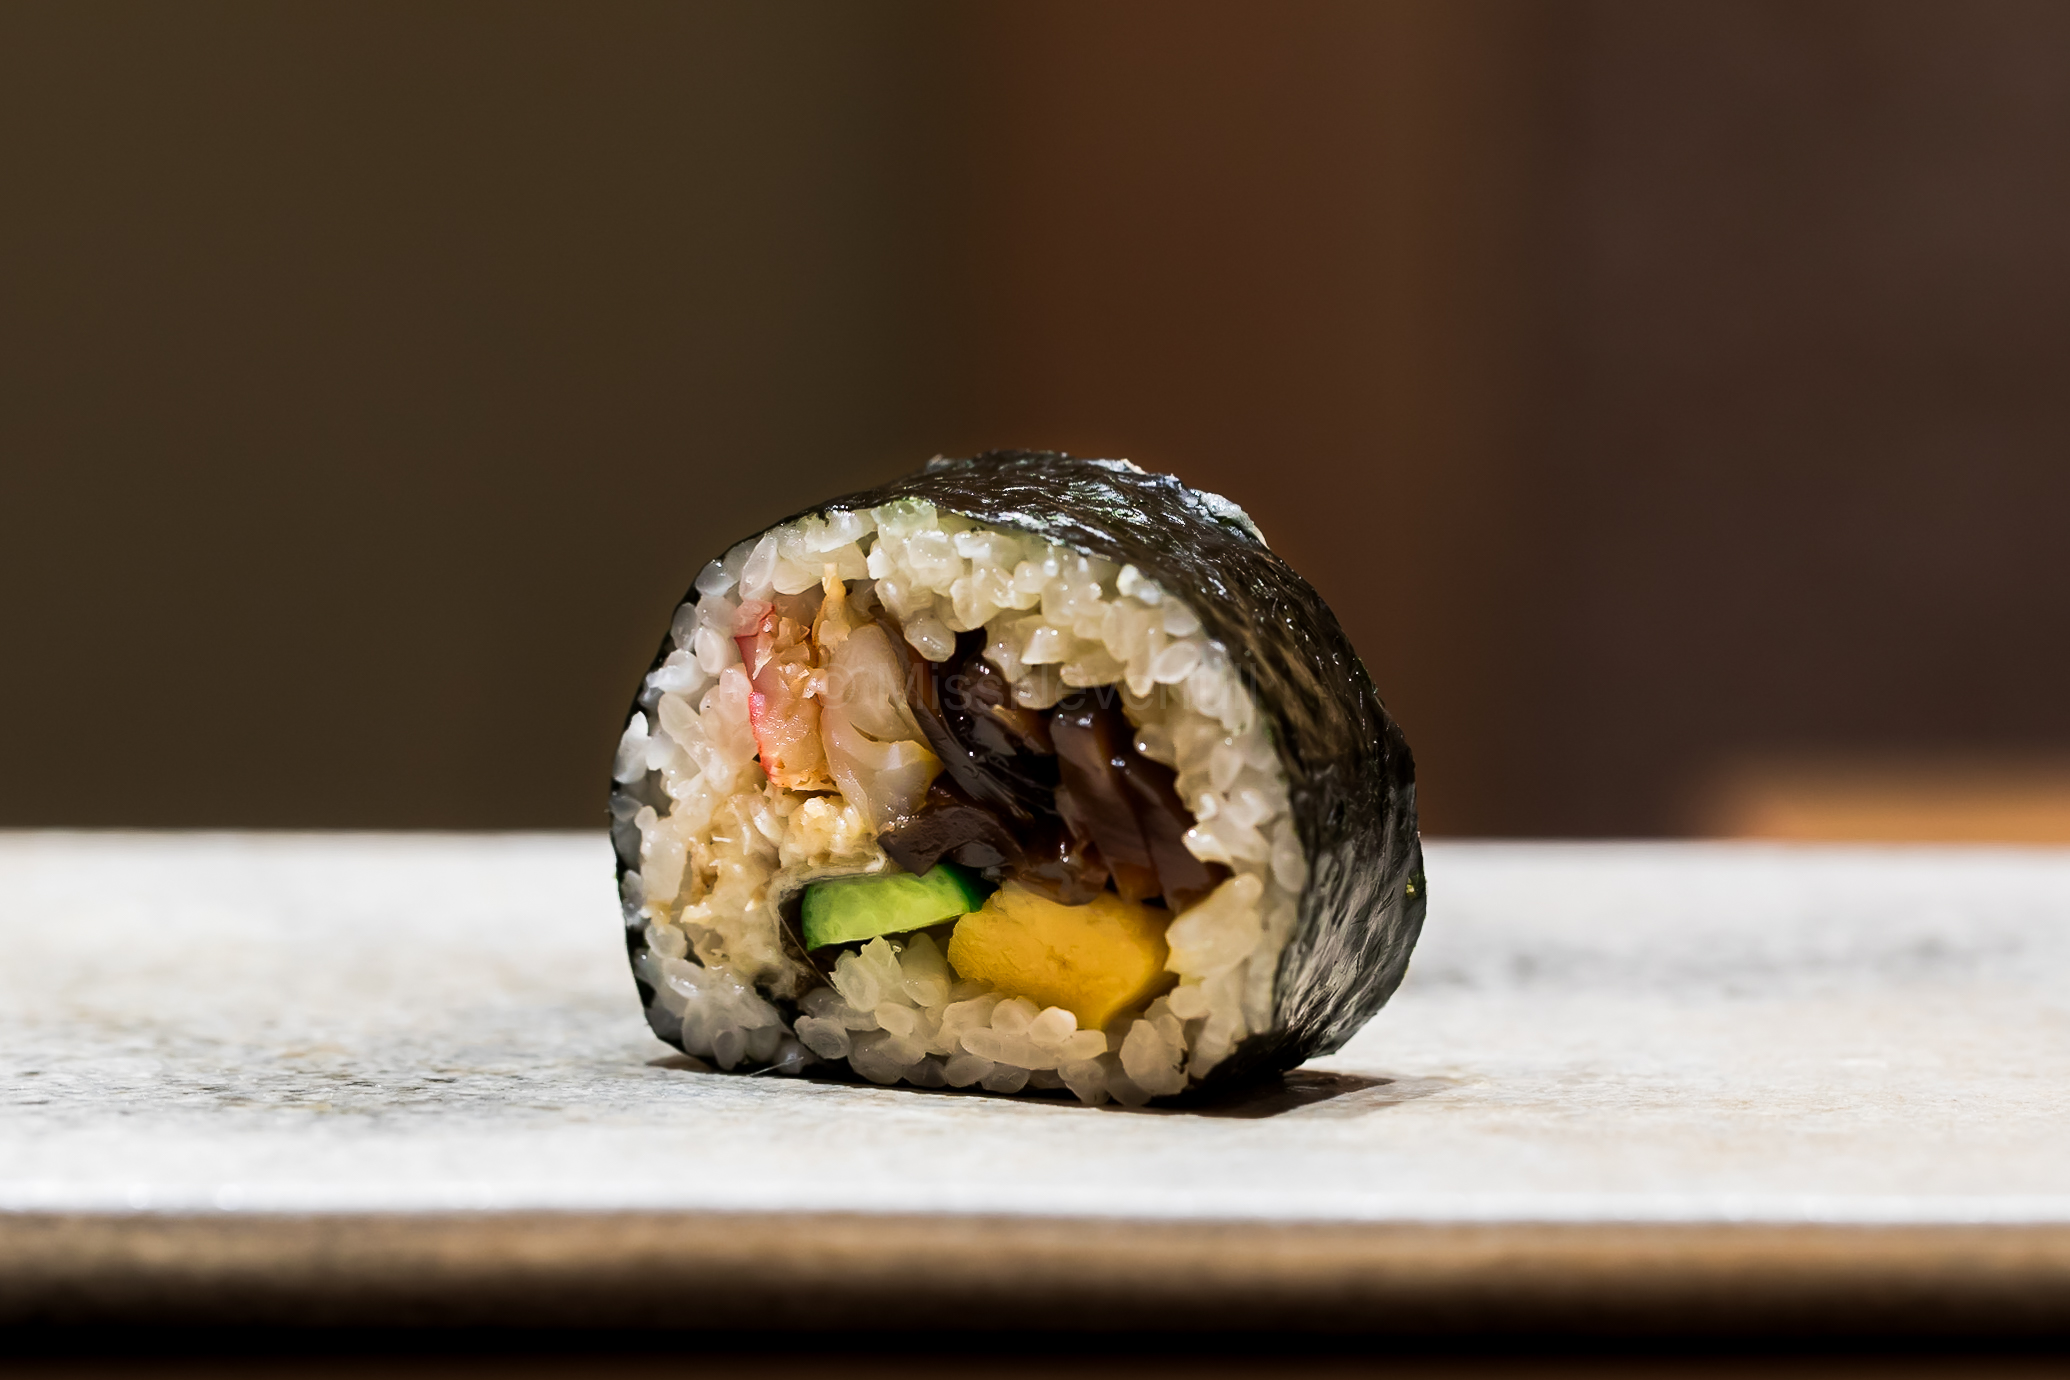 13. Futomaki - with crab, kanpyo, cucumber, tamago and anago inside. Tastes as marvelous as it looks!